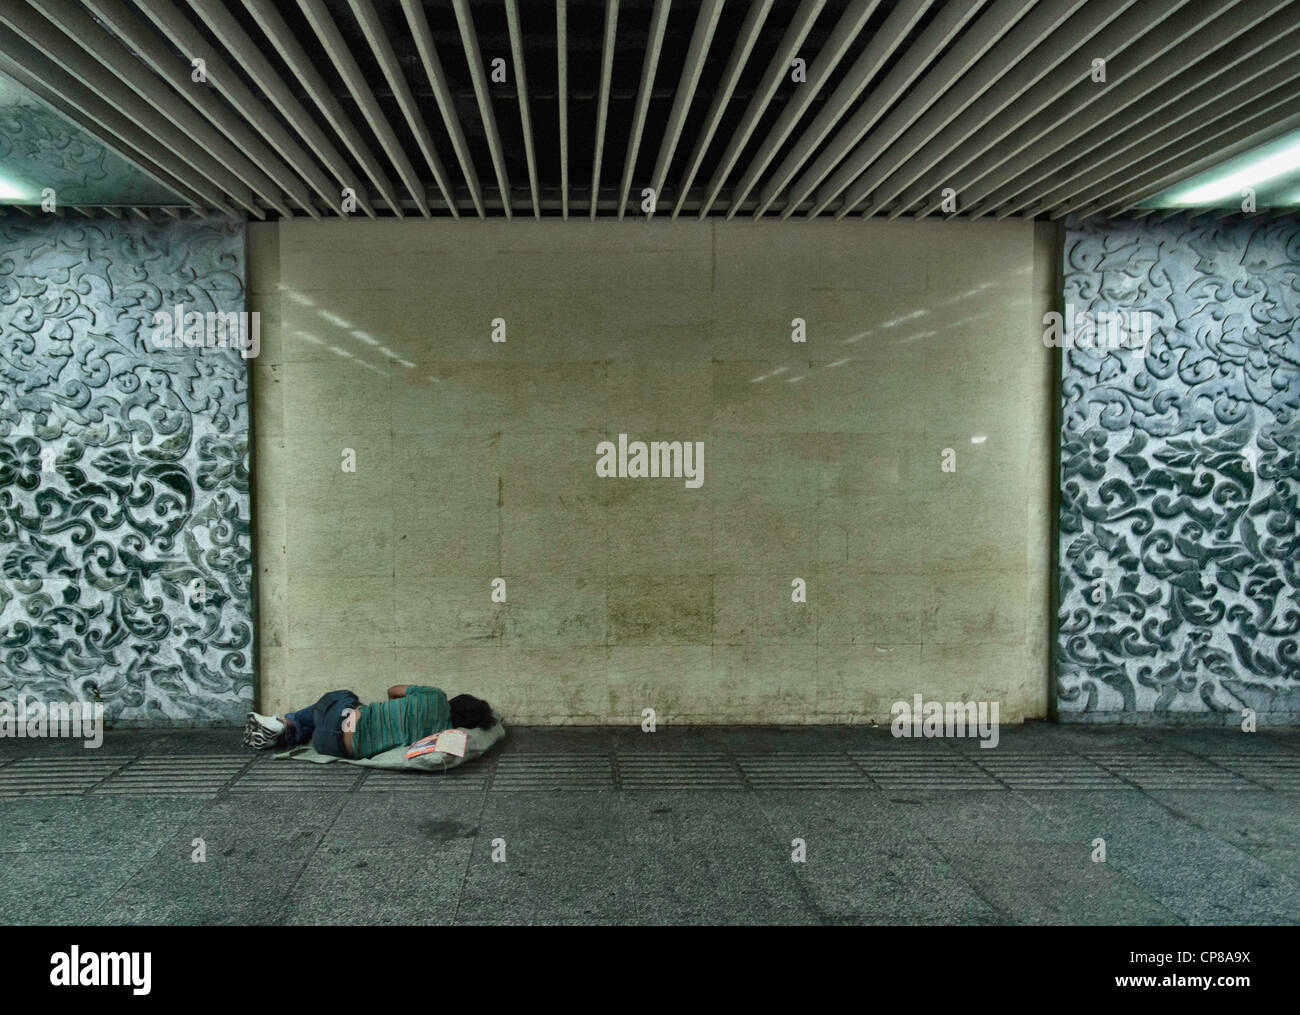 homeless person in subway in china - Stock Image